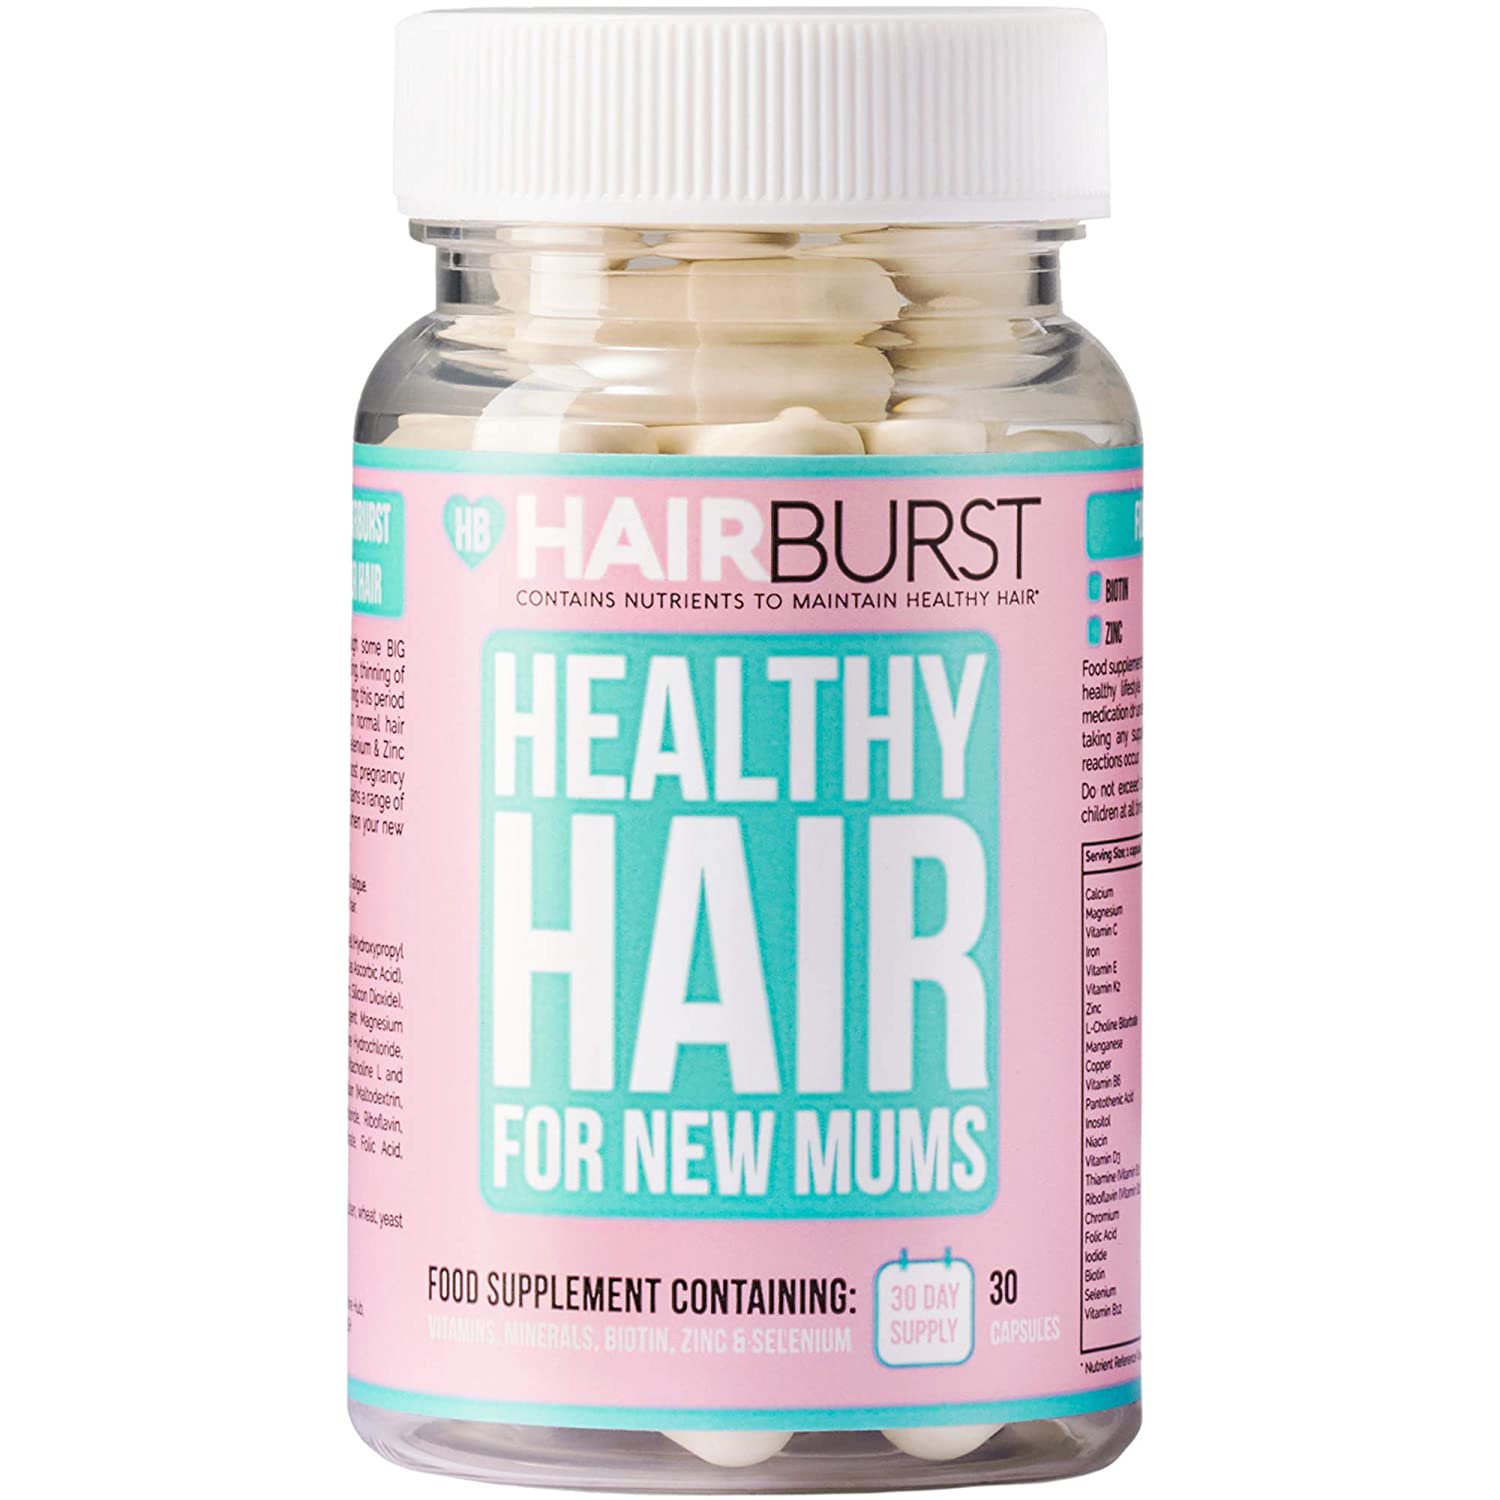 Hairburst Healthy Hair for New Mums